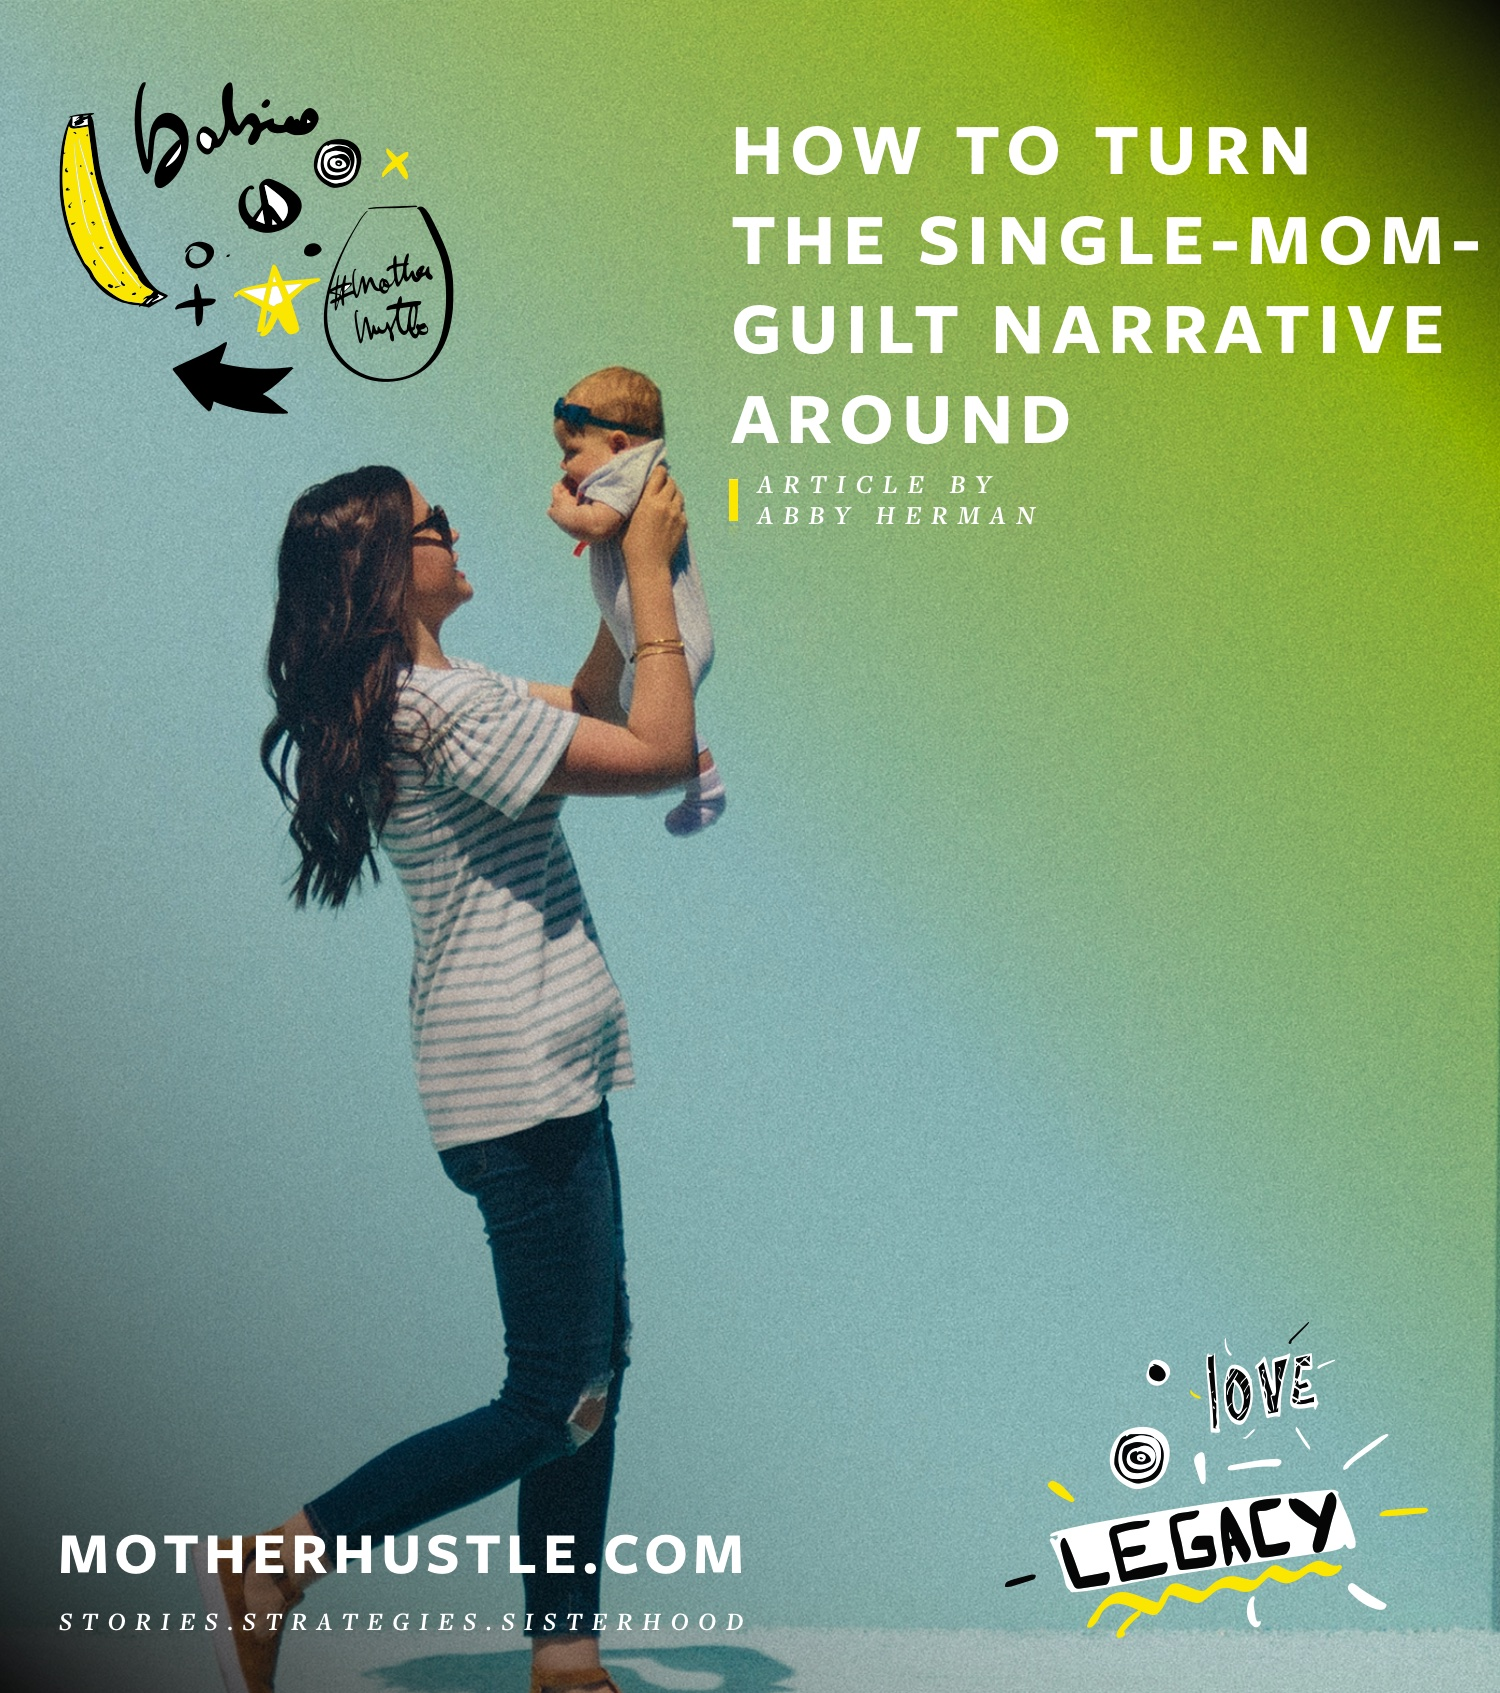 How to Turn the Single-Mom-Guilt Narrative Around - by Abby Herman for MotherHustle